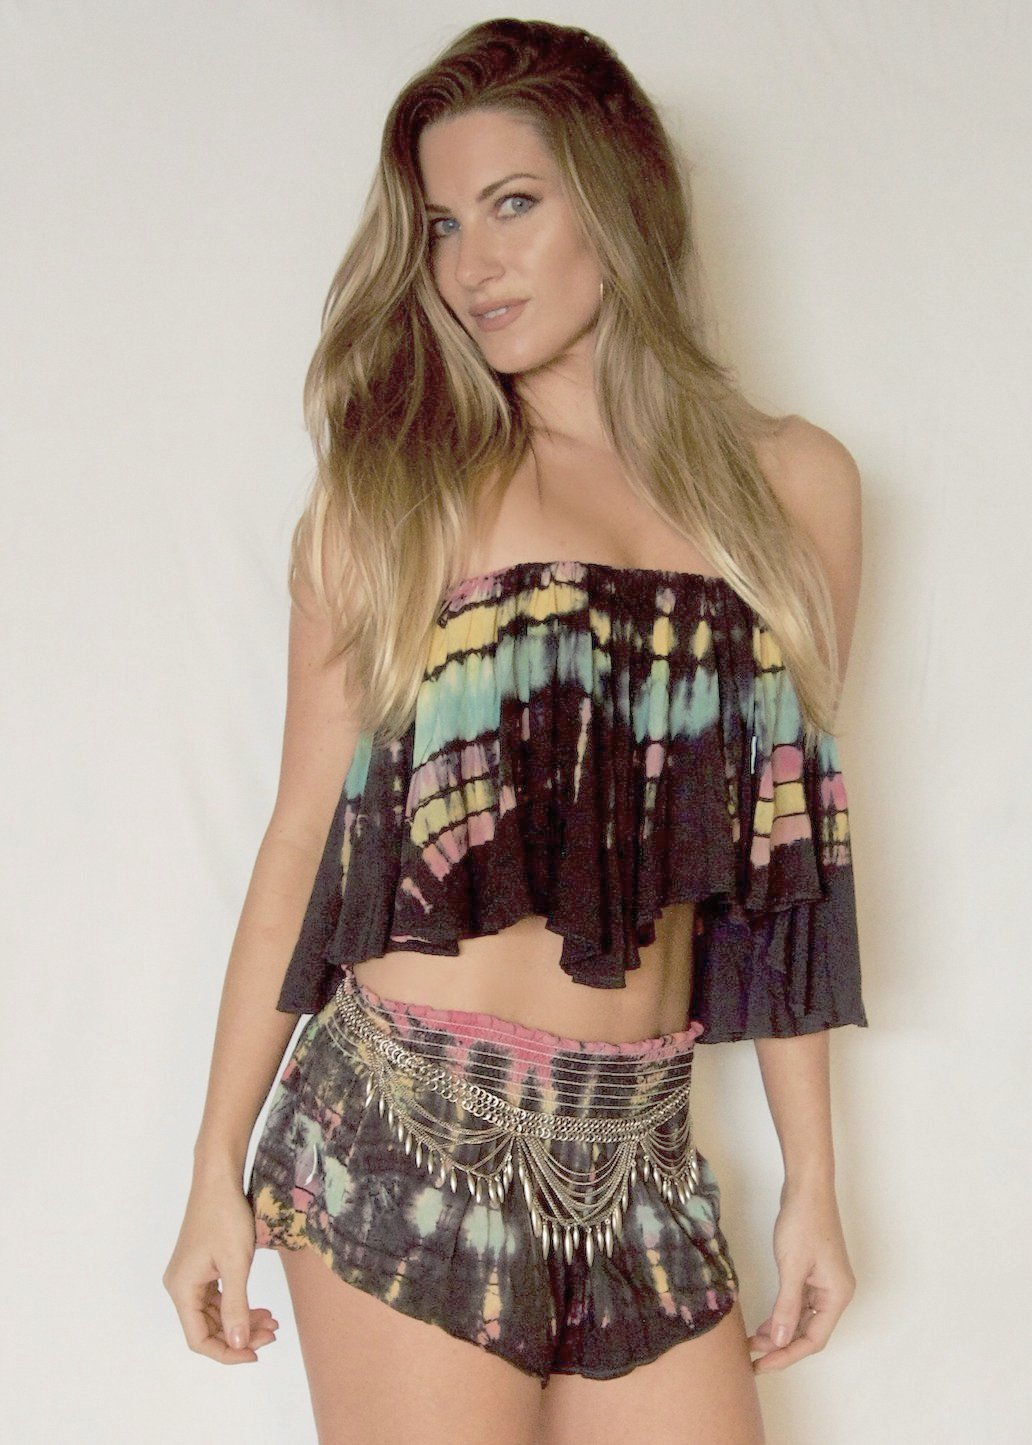 Planet Blue Blue Life Festival Tie-dye Bunny Shorts and Tube Top - Pink Blue Yellow Coachella